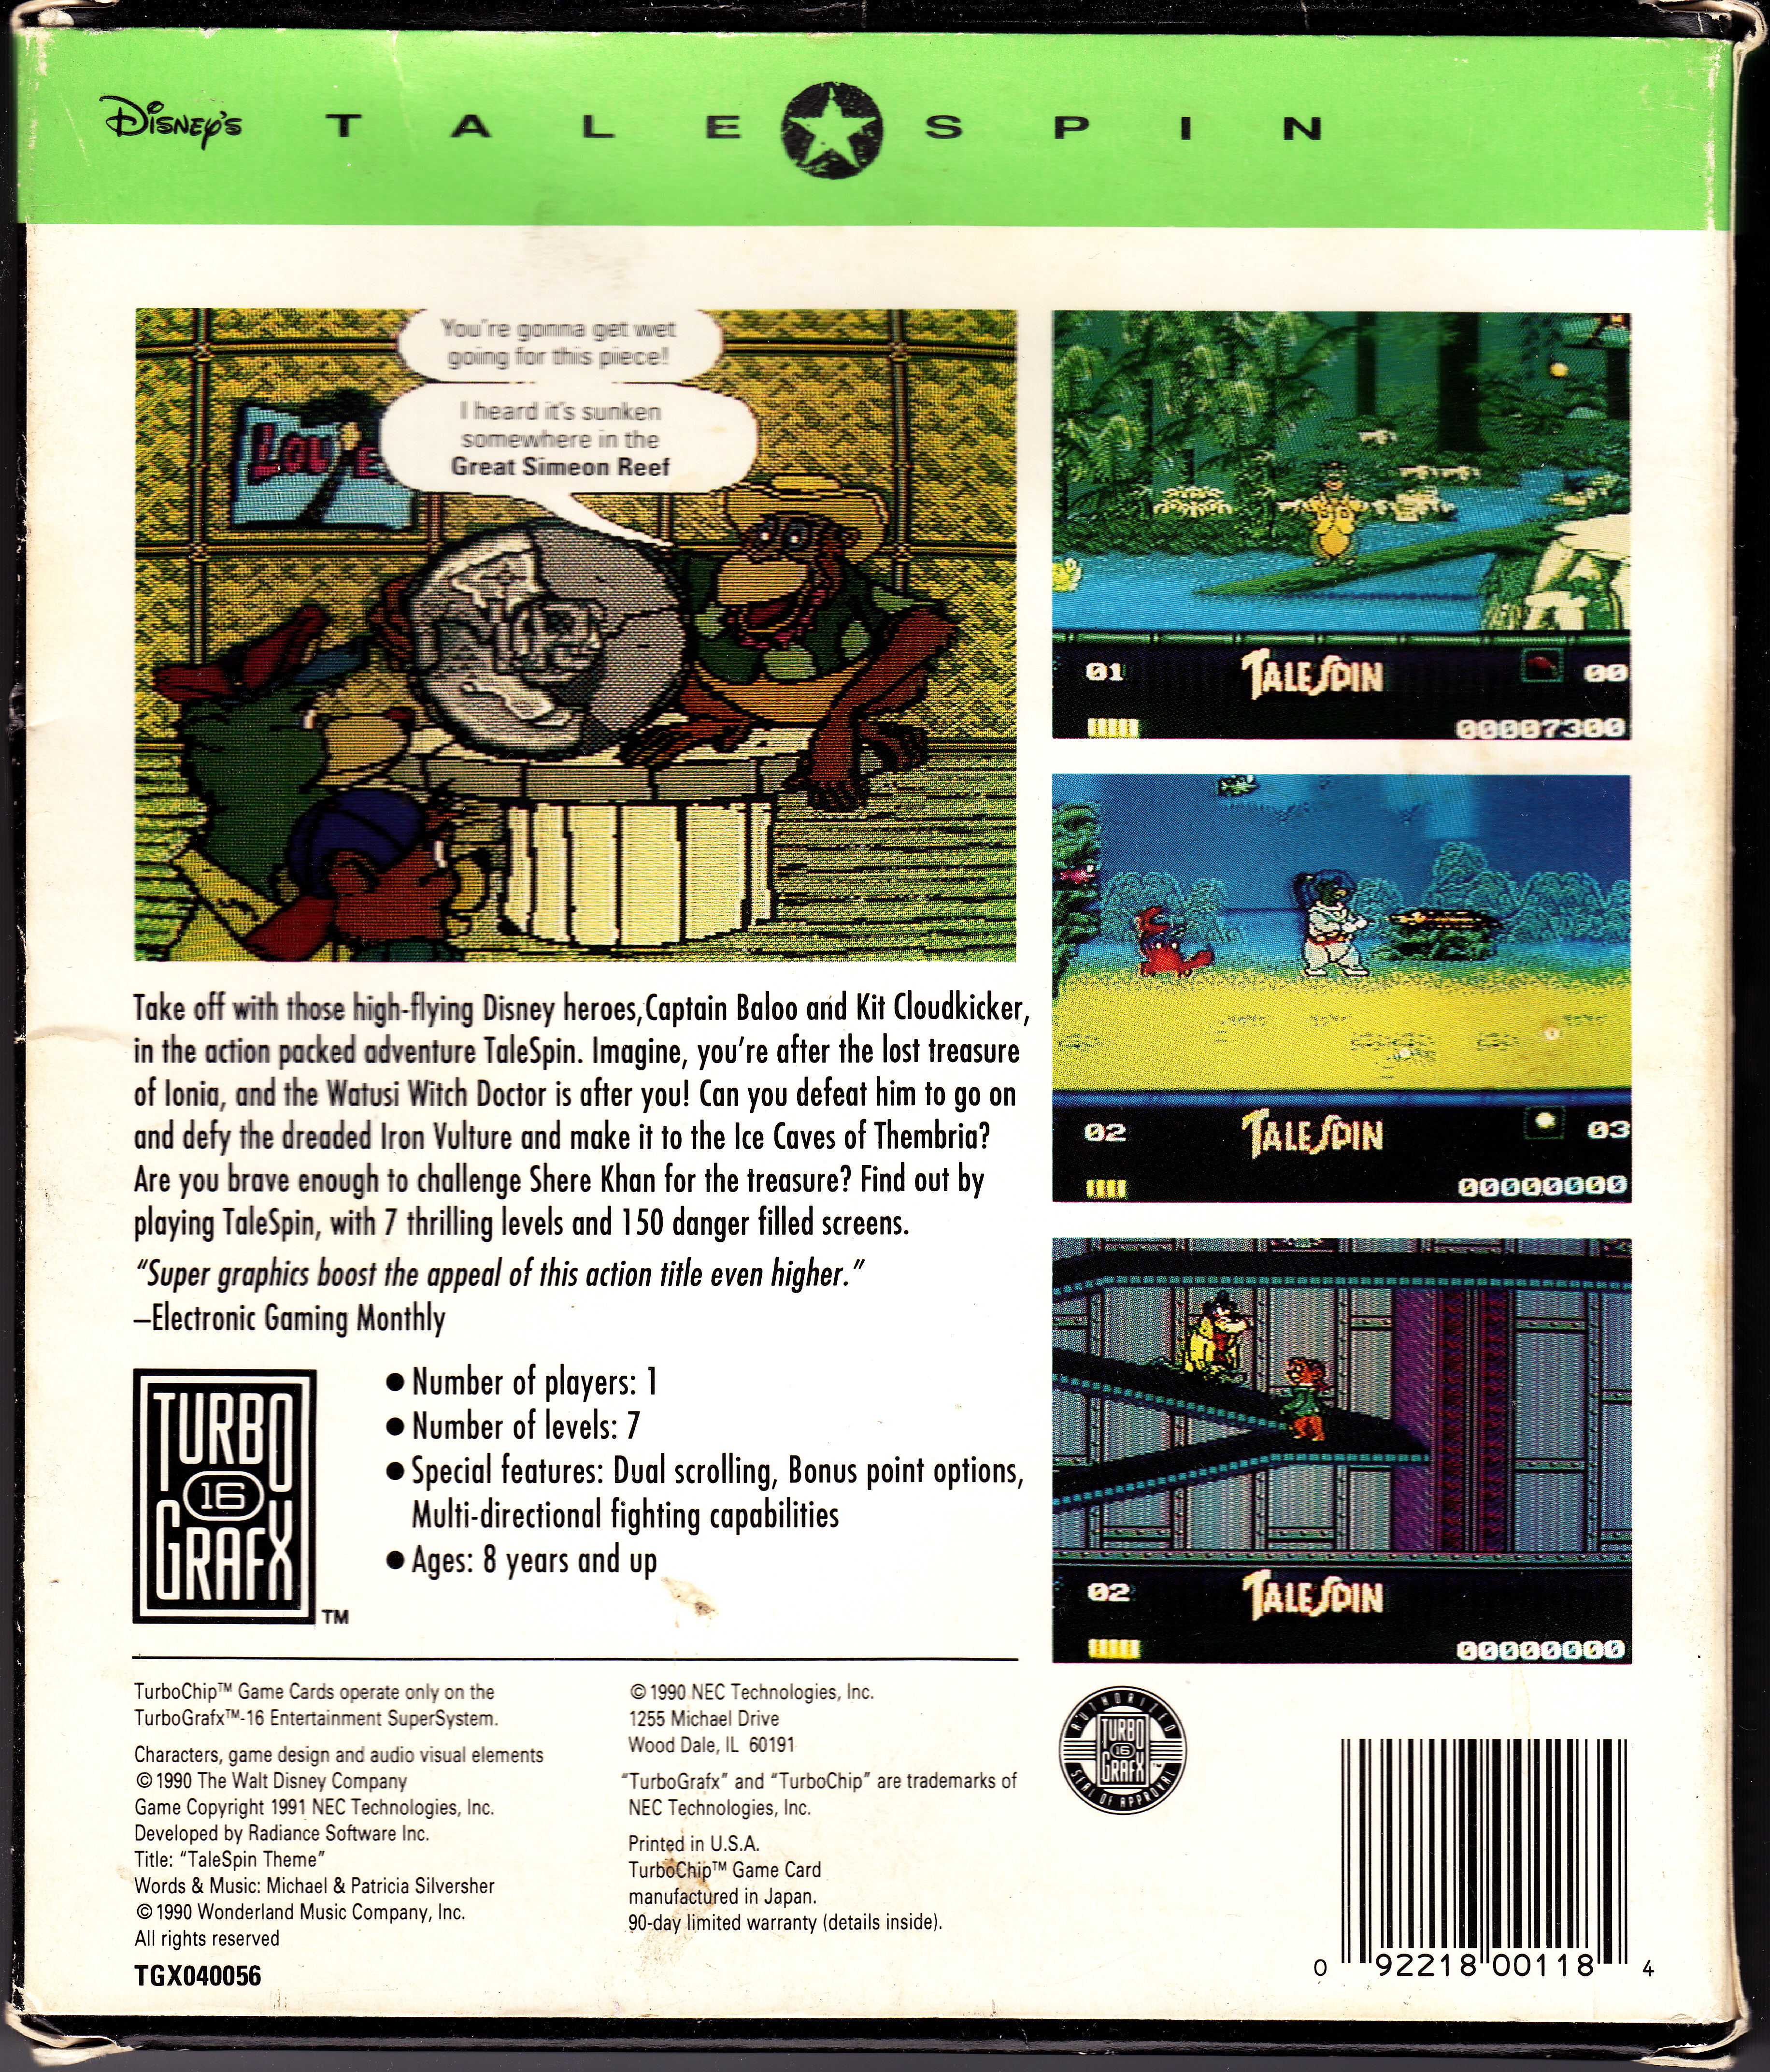 Super Baloo/Talespin (Playmates et autres) 1991 Turbo%20Grafx-16%20Tale%20Spin%20Back%20Cover